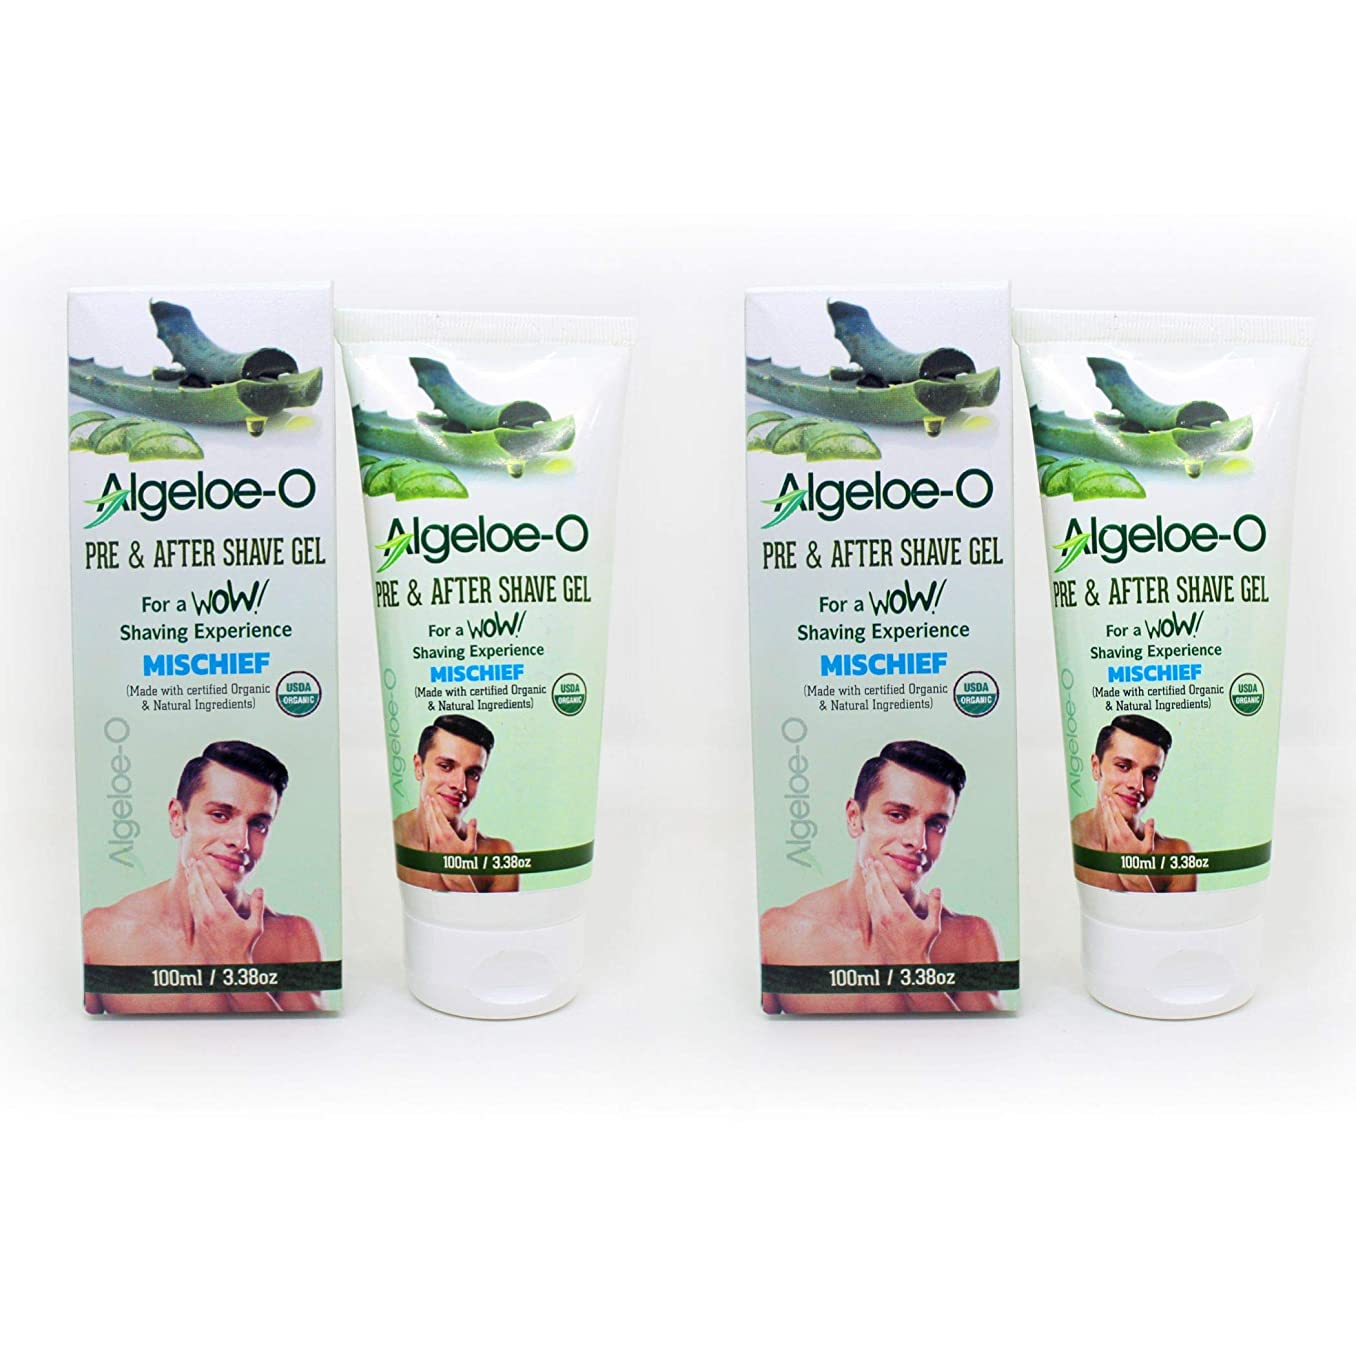 Aloevera Pre And After Shave Gel - Algeloe O Made With Certified USDA Organic And Natural Ingredients - Mischief 100 ml (3.38 Oz.) Pack Of 2